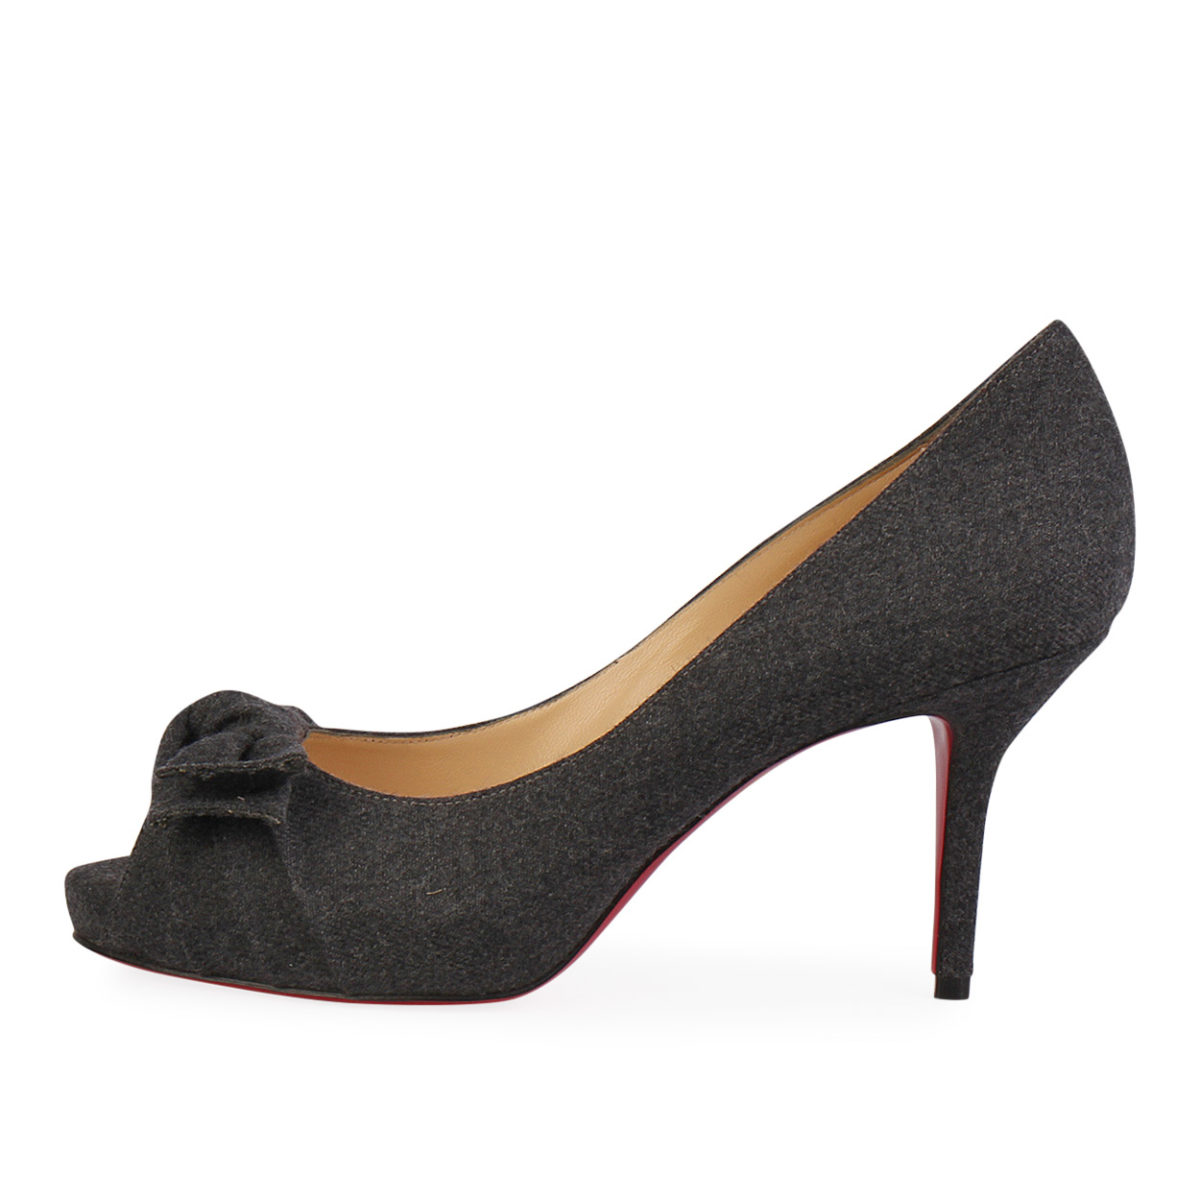 4c5c254310a CHRISTIAN LOUBOUTIN Flannel Madame Butterfly Pumps 85 Dark Grey - S ...